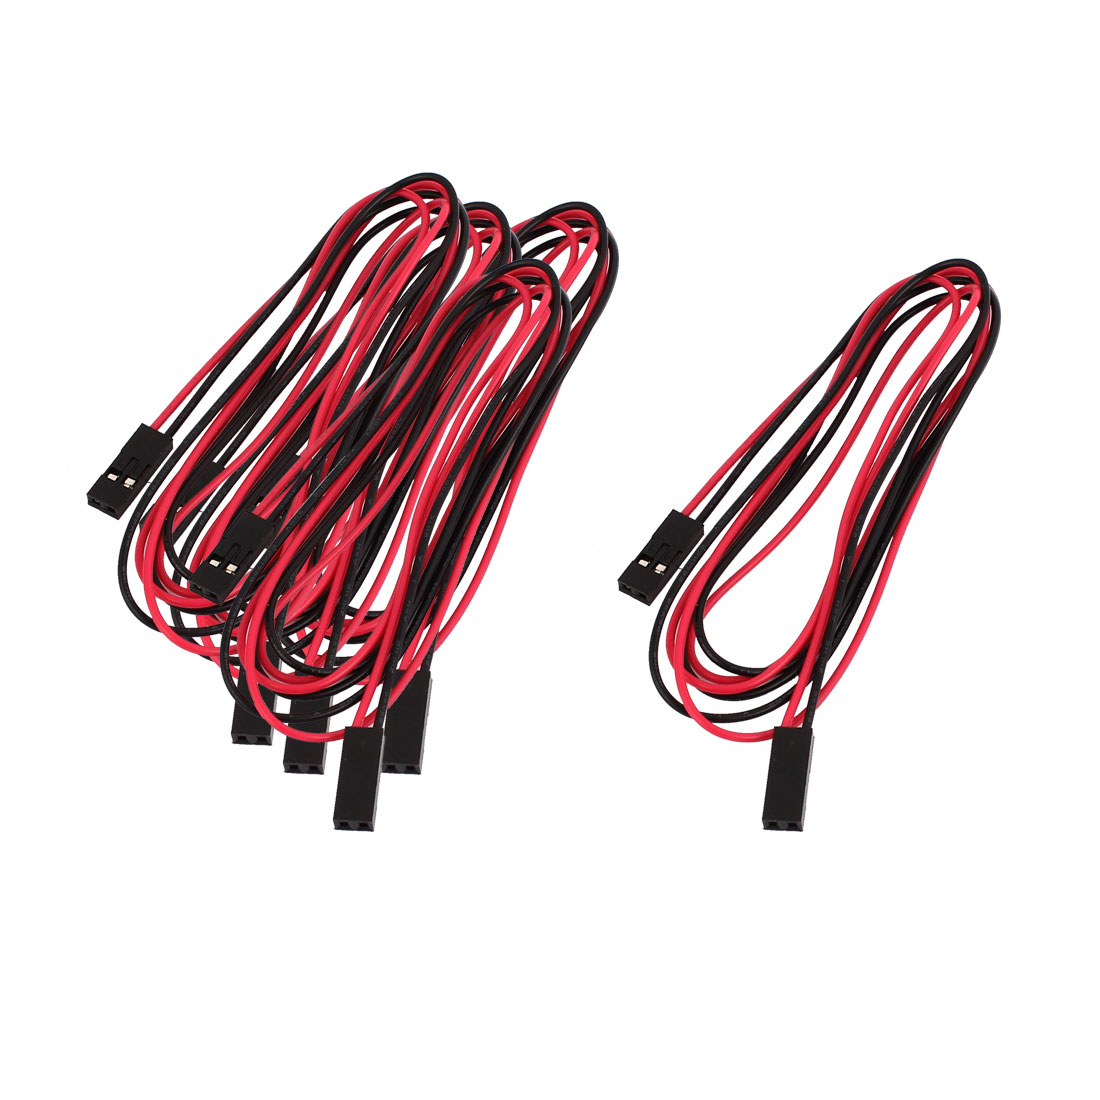 5 Pcs Double End 2P Male Connector Extension Wire 70cm Black Red